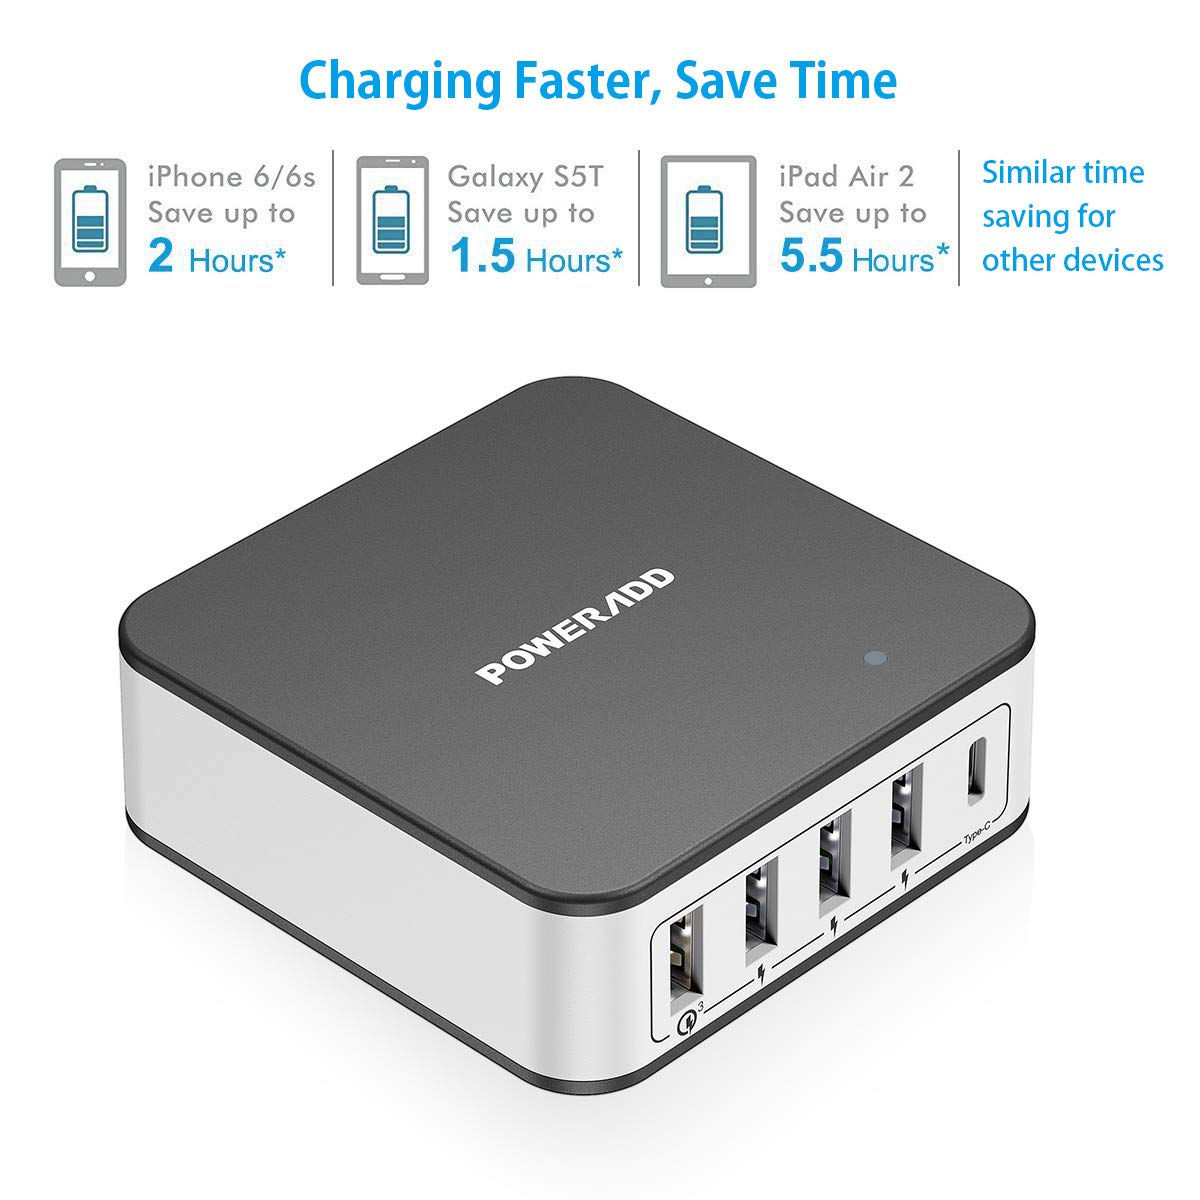 Poweradd USB C Wall Charger, 40W 5-Port USB Main Charger QC3.0 USB Plug Chargers Compatible with Apple iPhone 11 Pro/XS Max/XR/X/8/8 Plus, Samsung S9/S9+/S8, Nexus, LG, and More